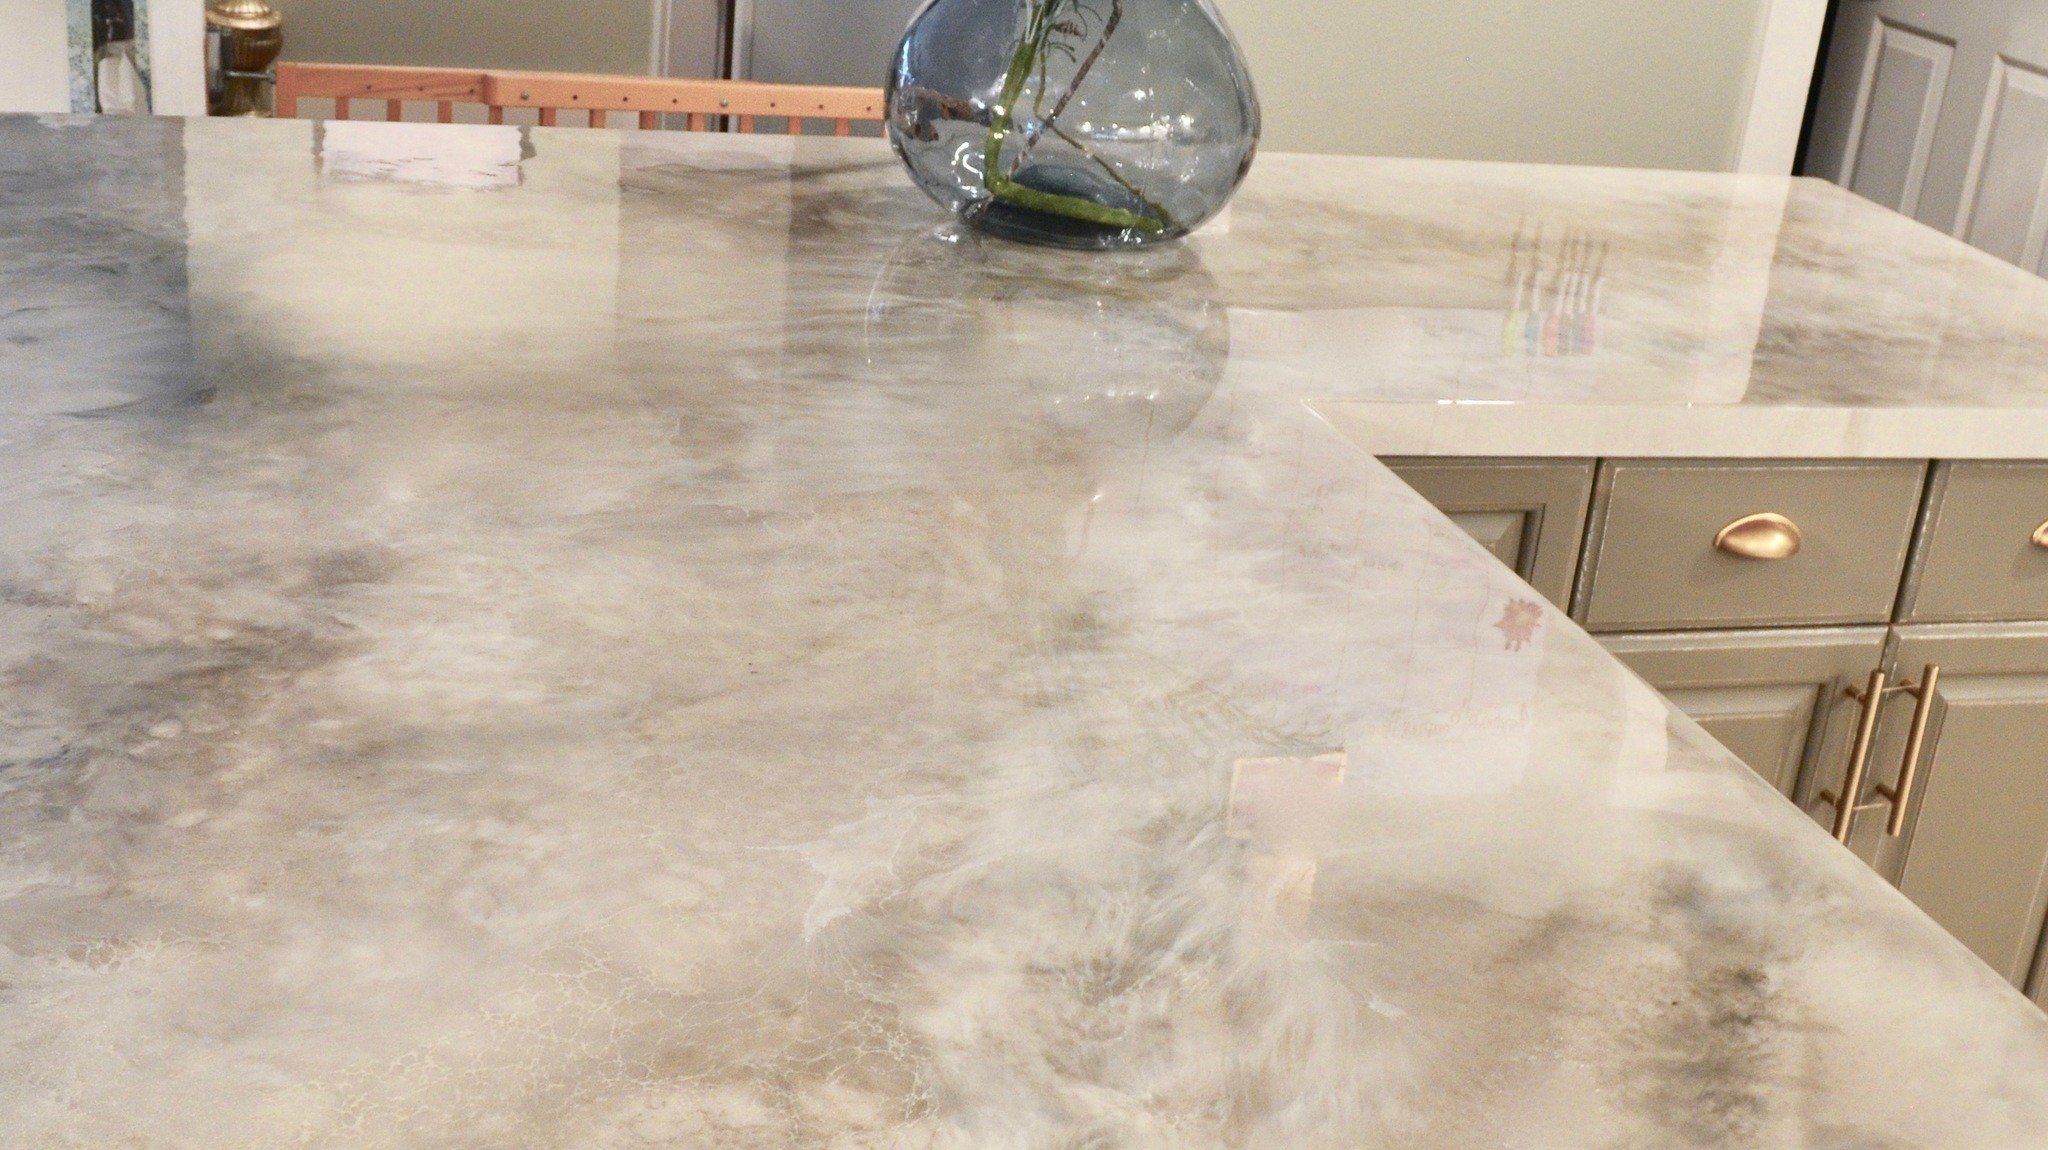 An Affordable Solution To Ugly Countertops